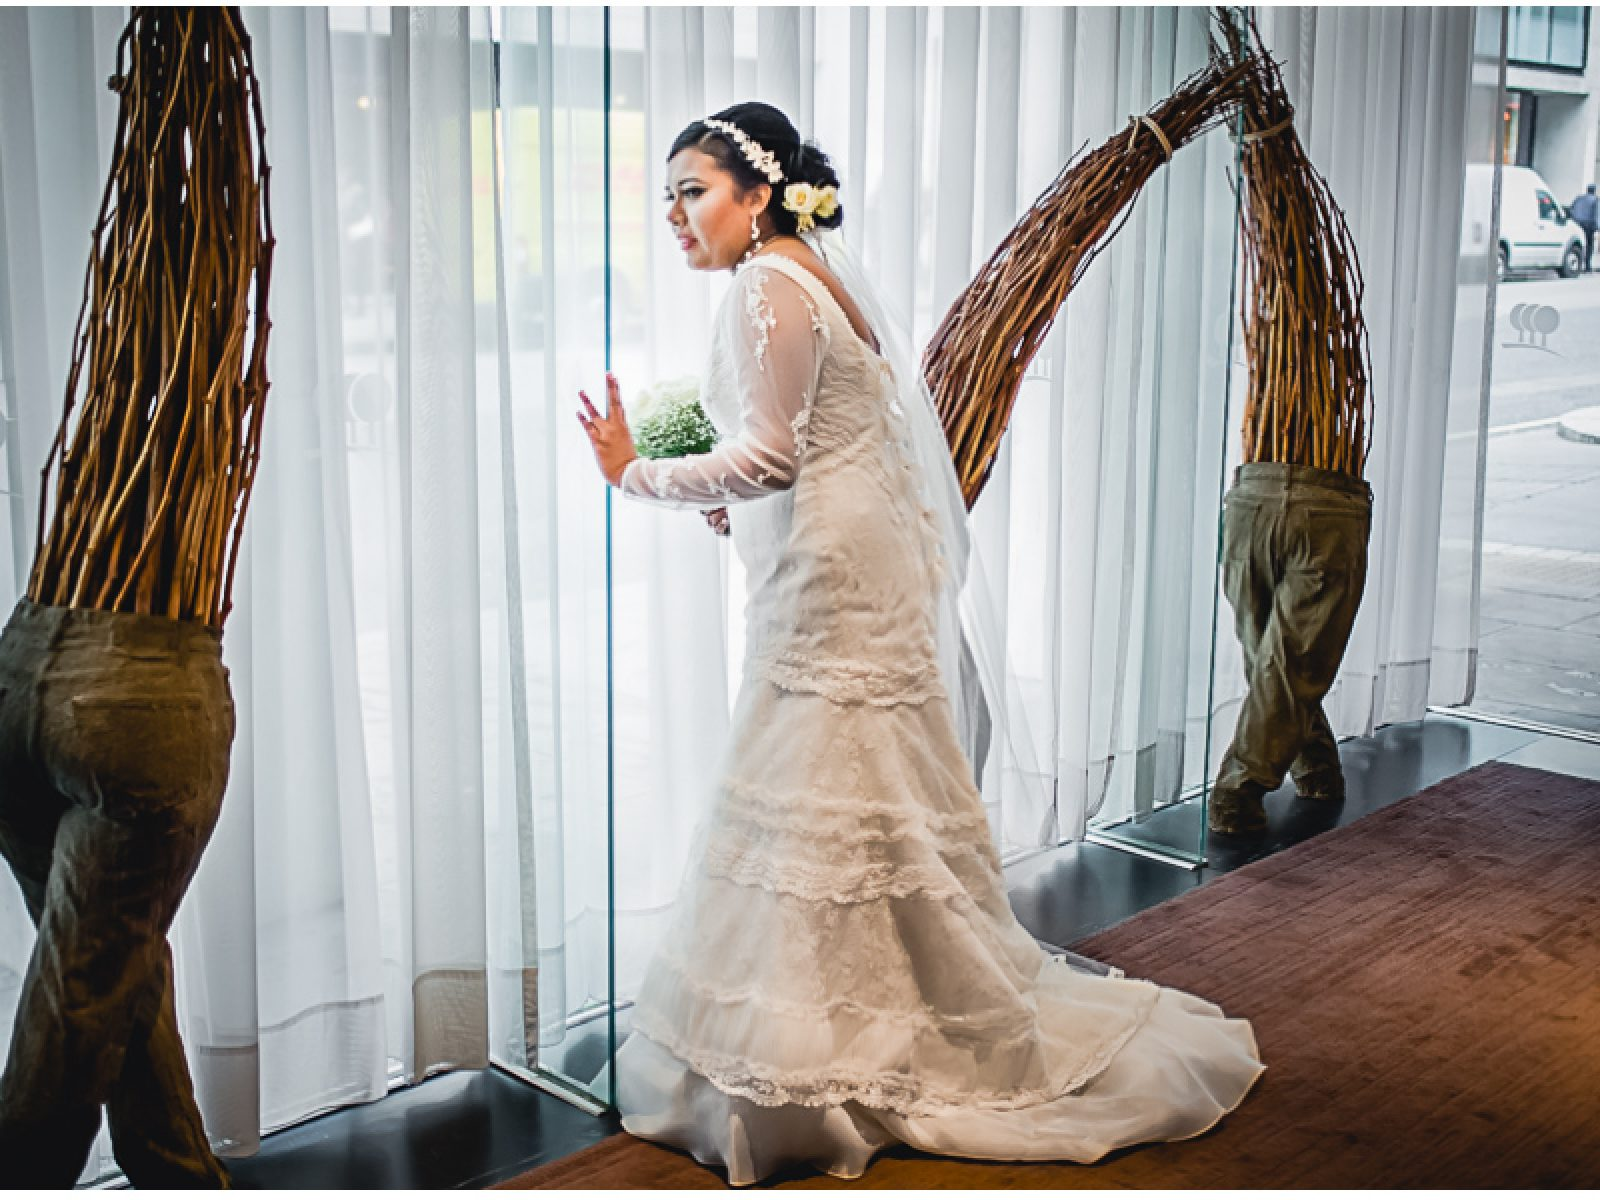 19a 1600x1200 - Darshani and Anthony - wedding photographer in London